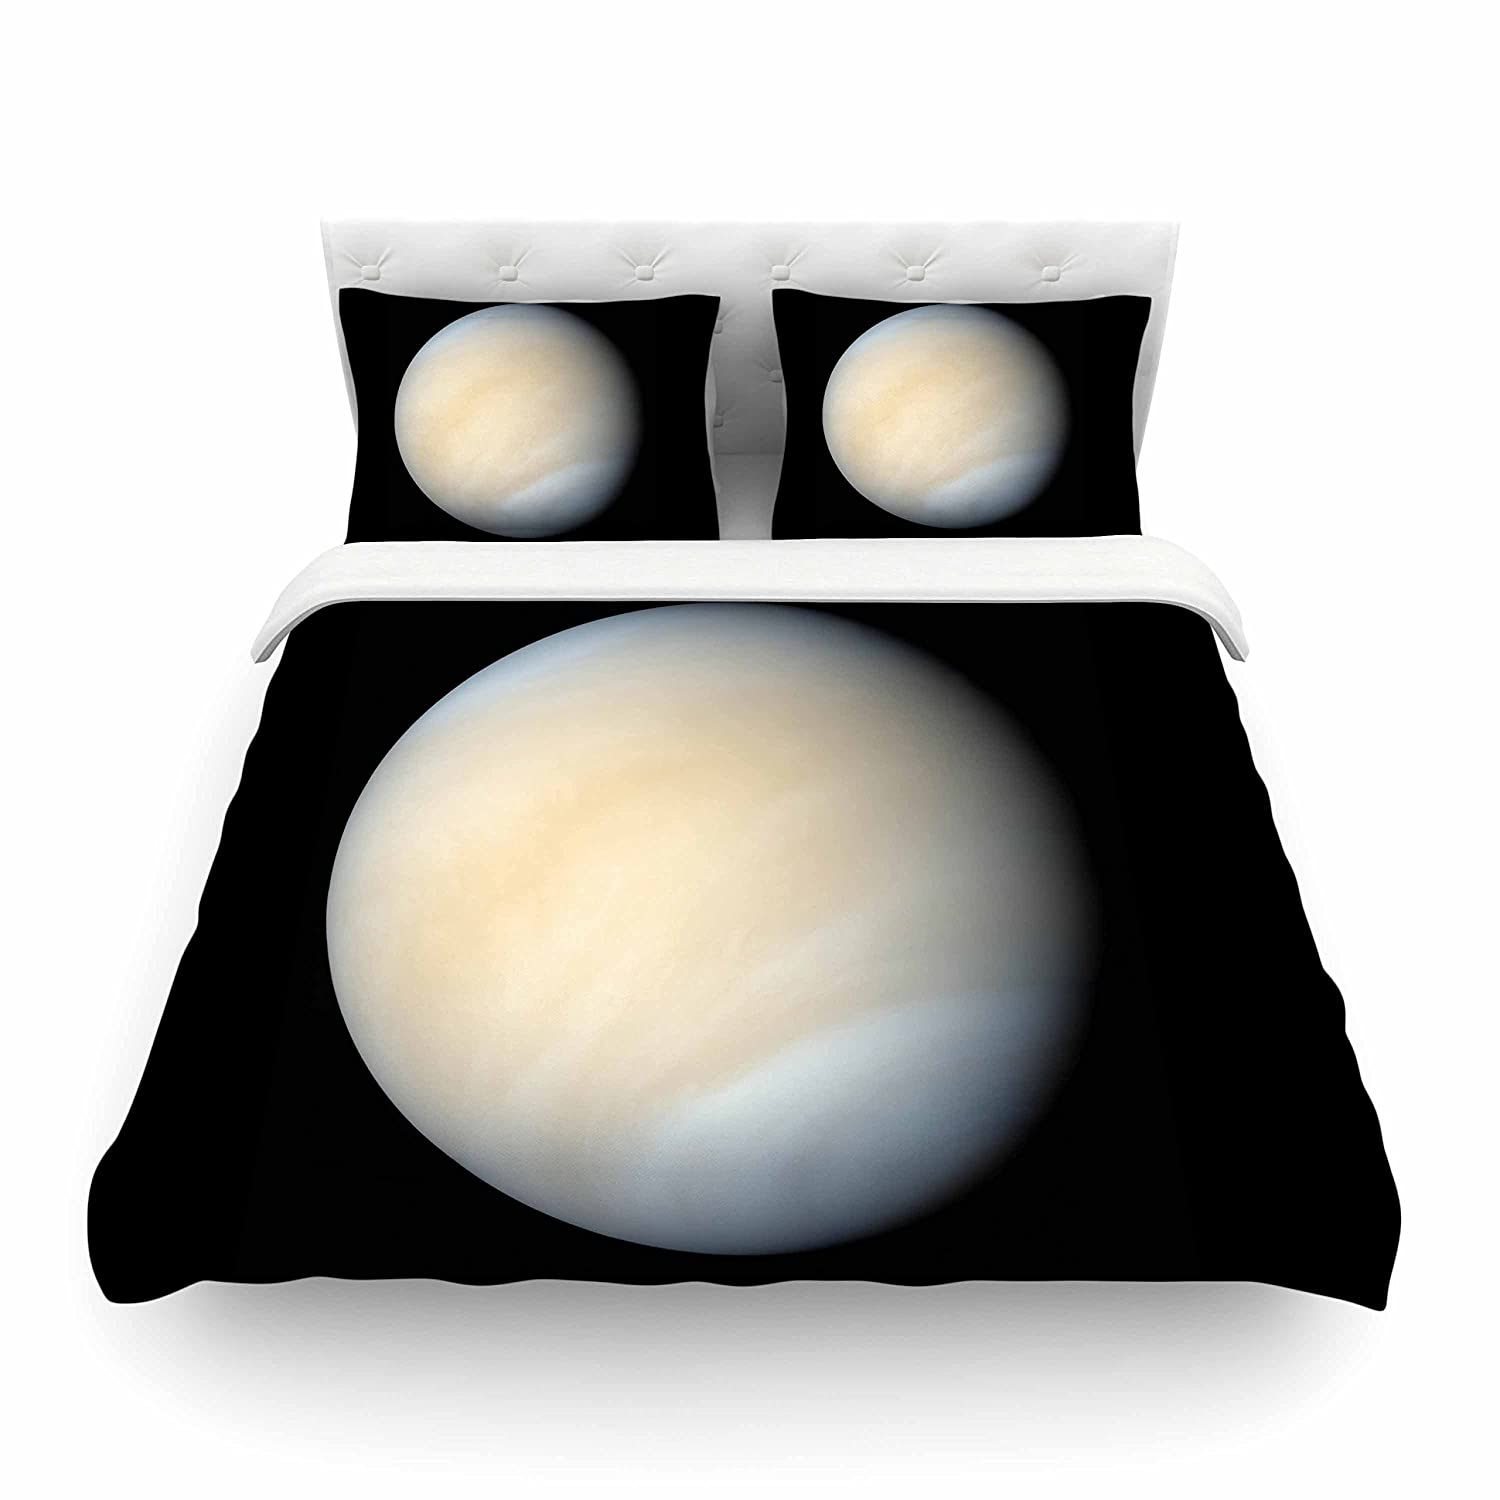 104 x 88 104 x 88 Kess InHouse Alias Venus King Cotton Duvet Cover